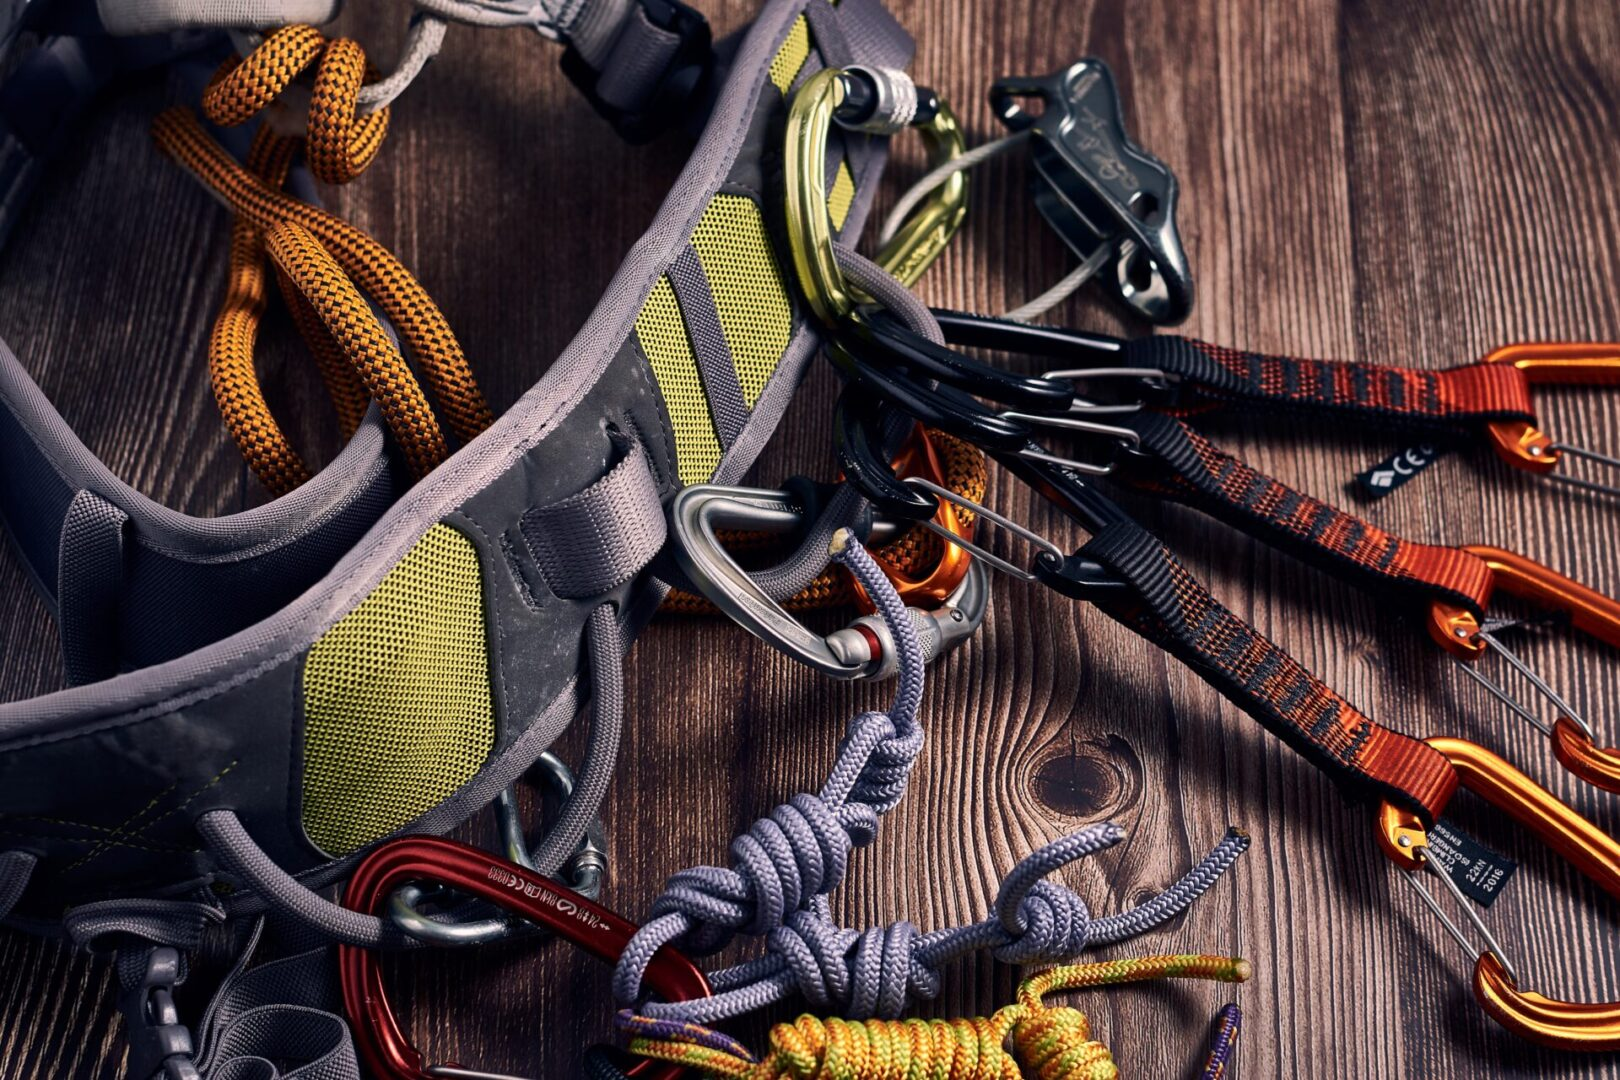 A closeup shot of many colorful climbing carabiners and knots on a wooden surface